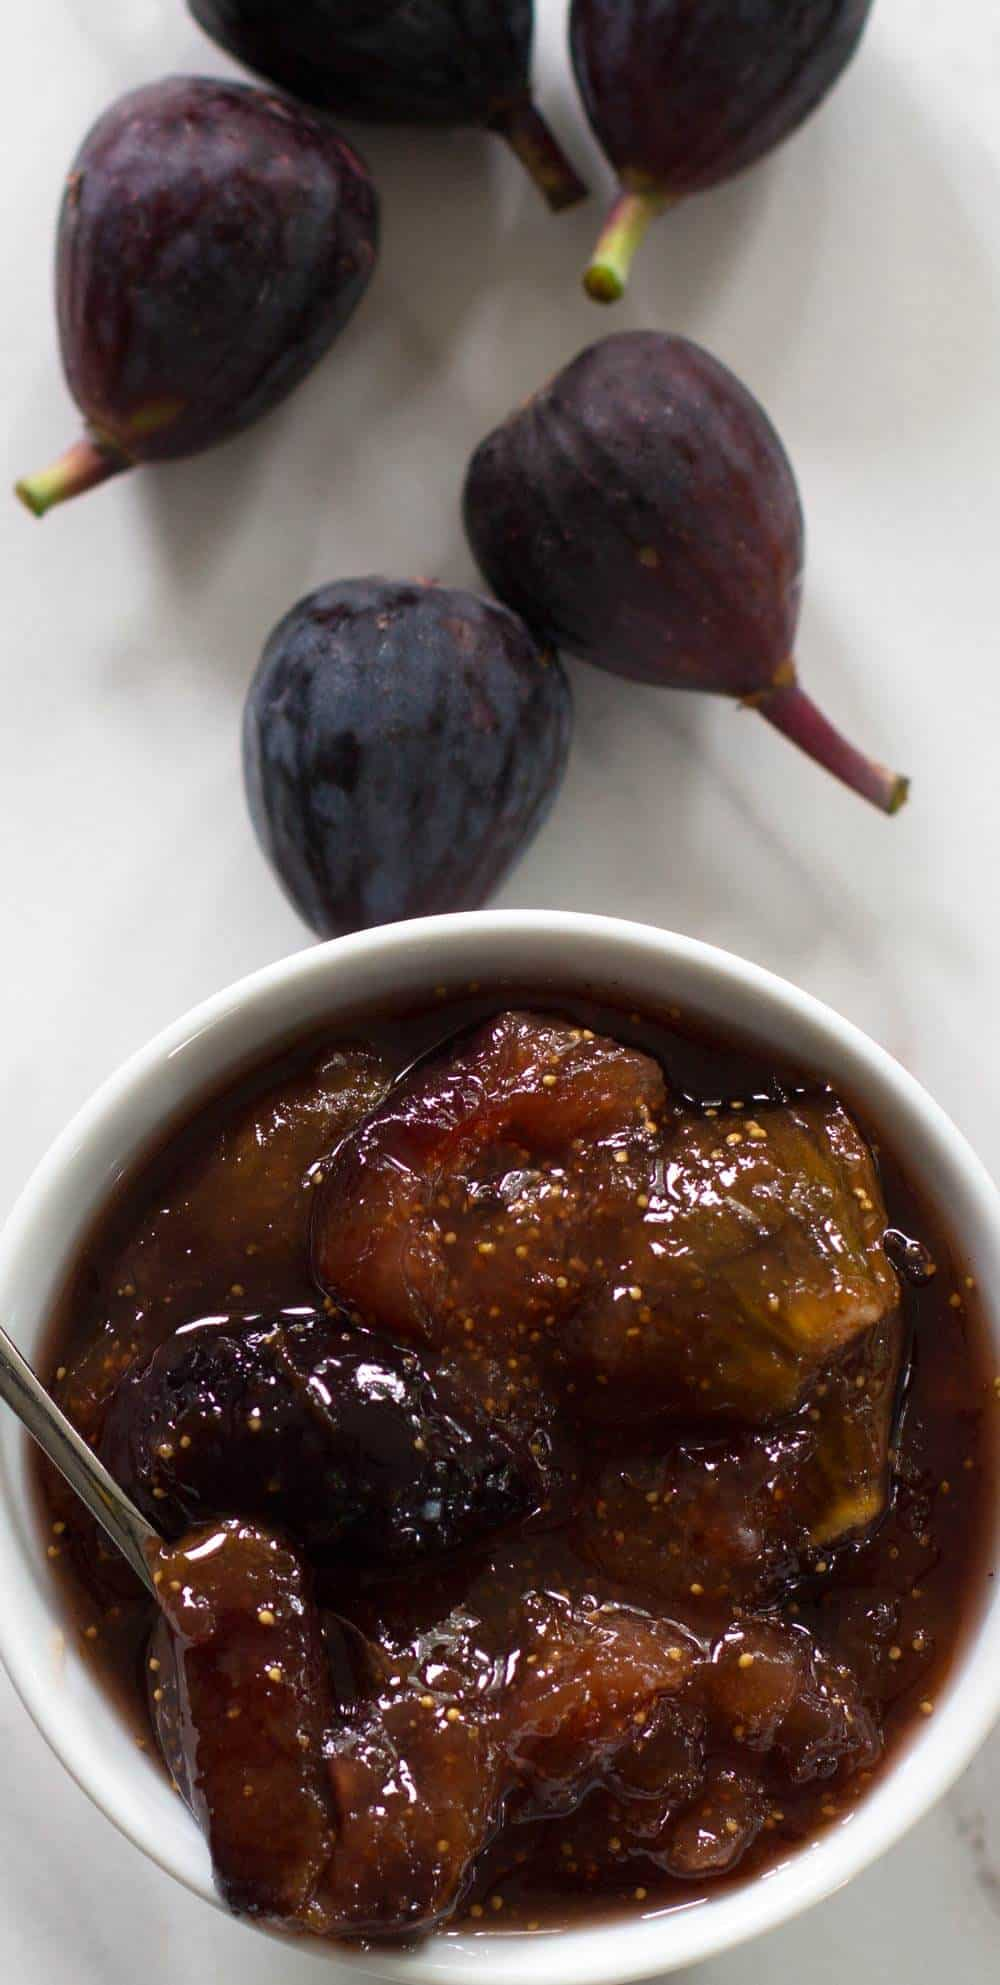 Fresh figs and fresh fig compote